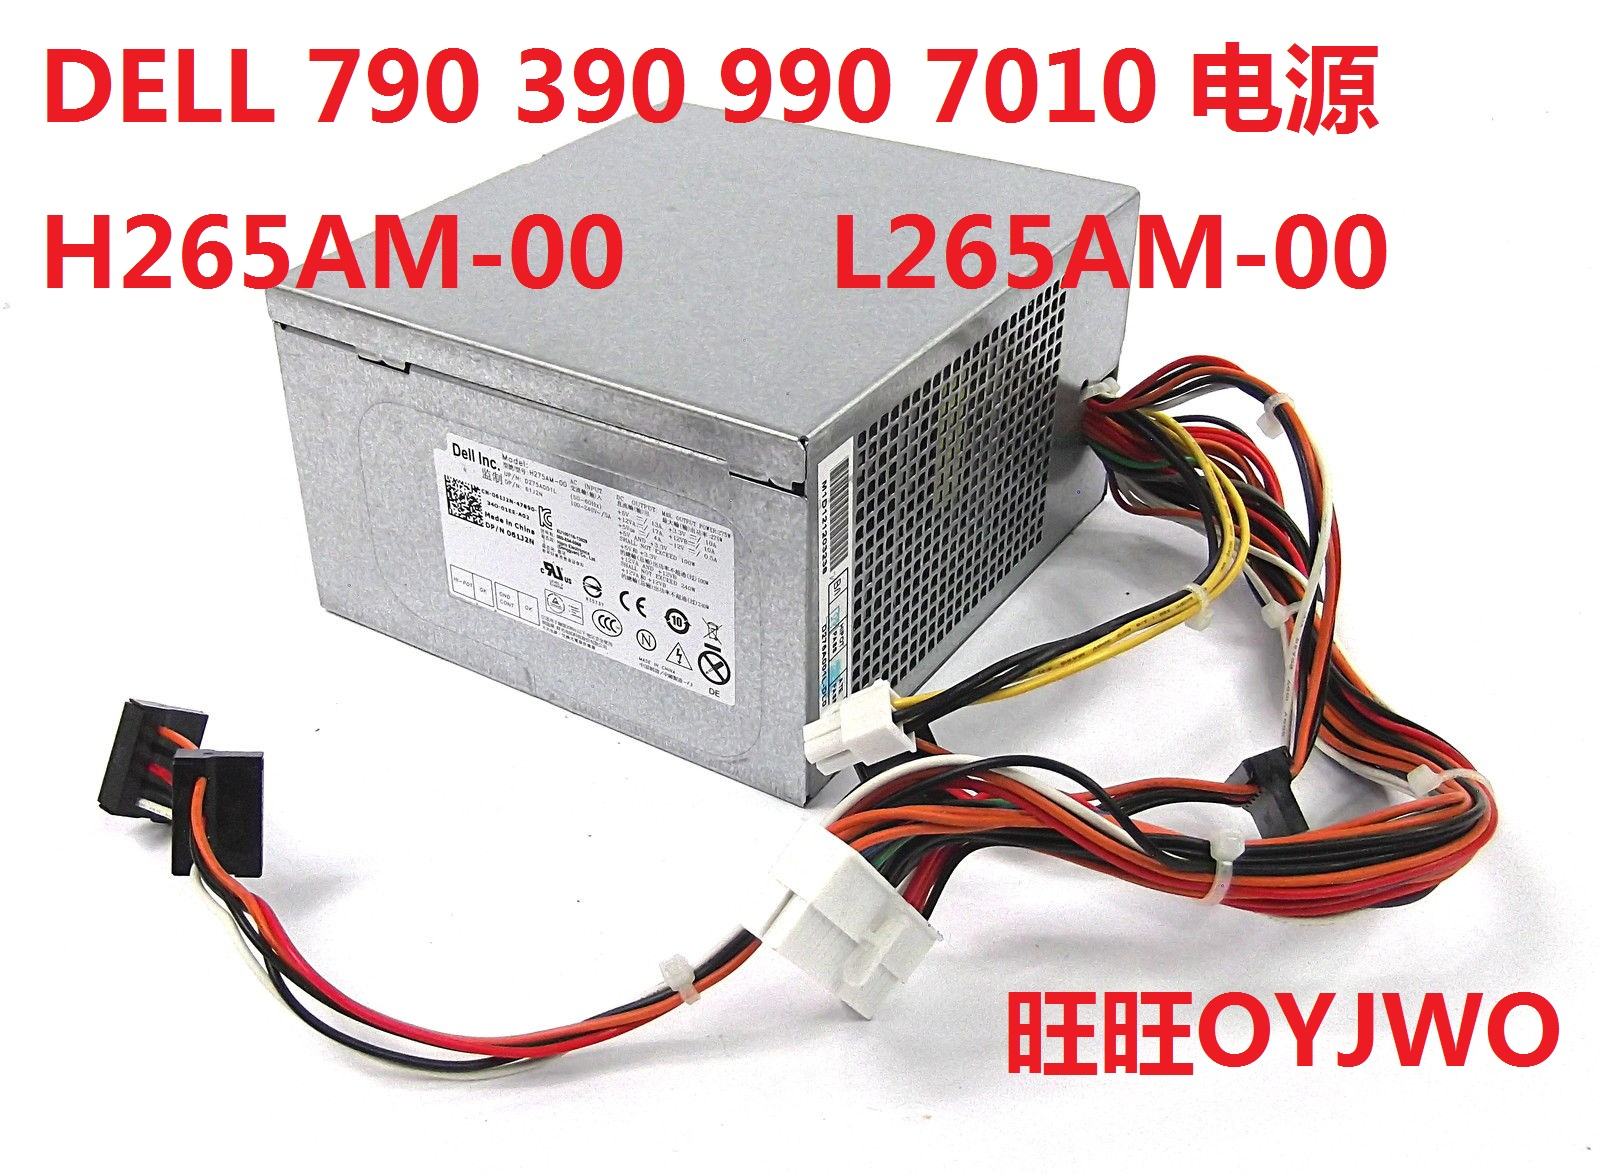 DELL Original 620 390 790 990 Large Power Supply L265AM-00 AC H265AM-00